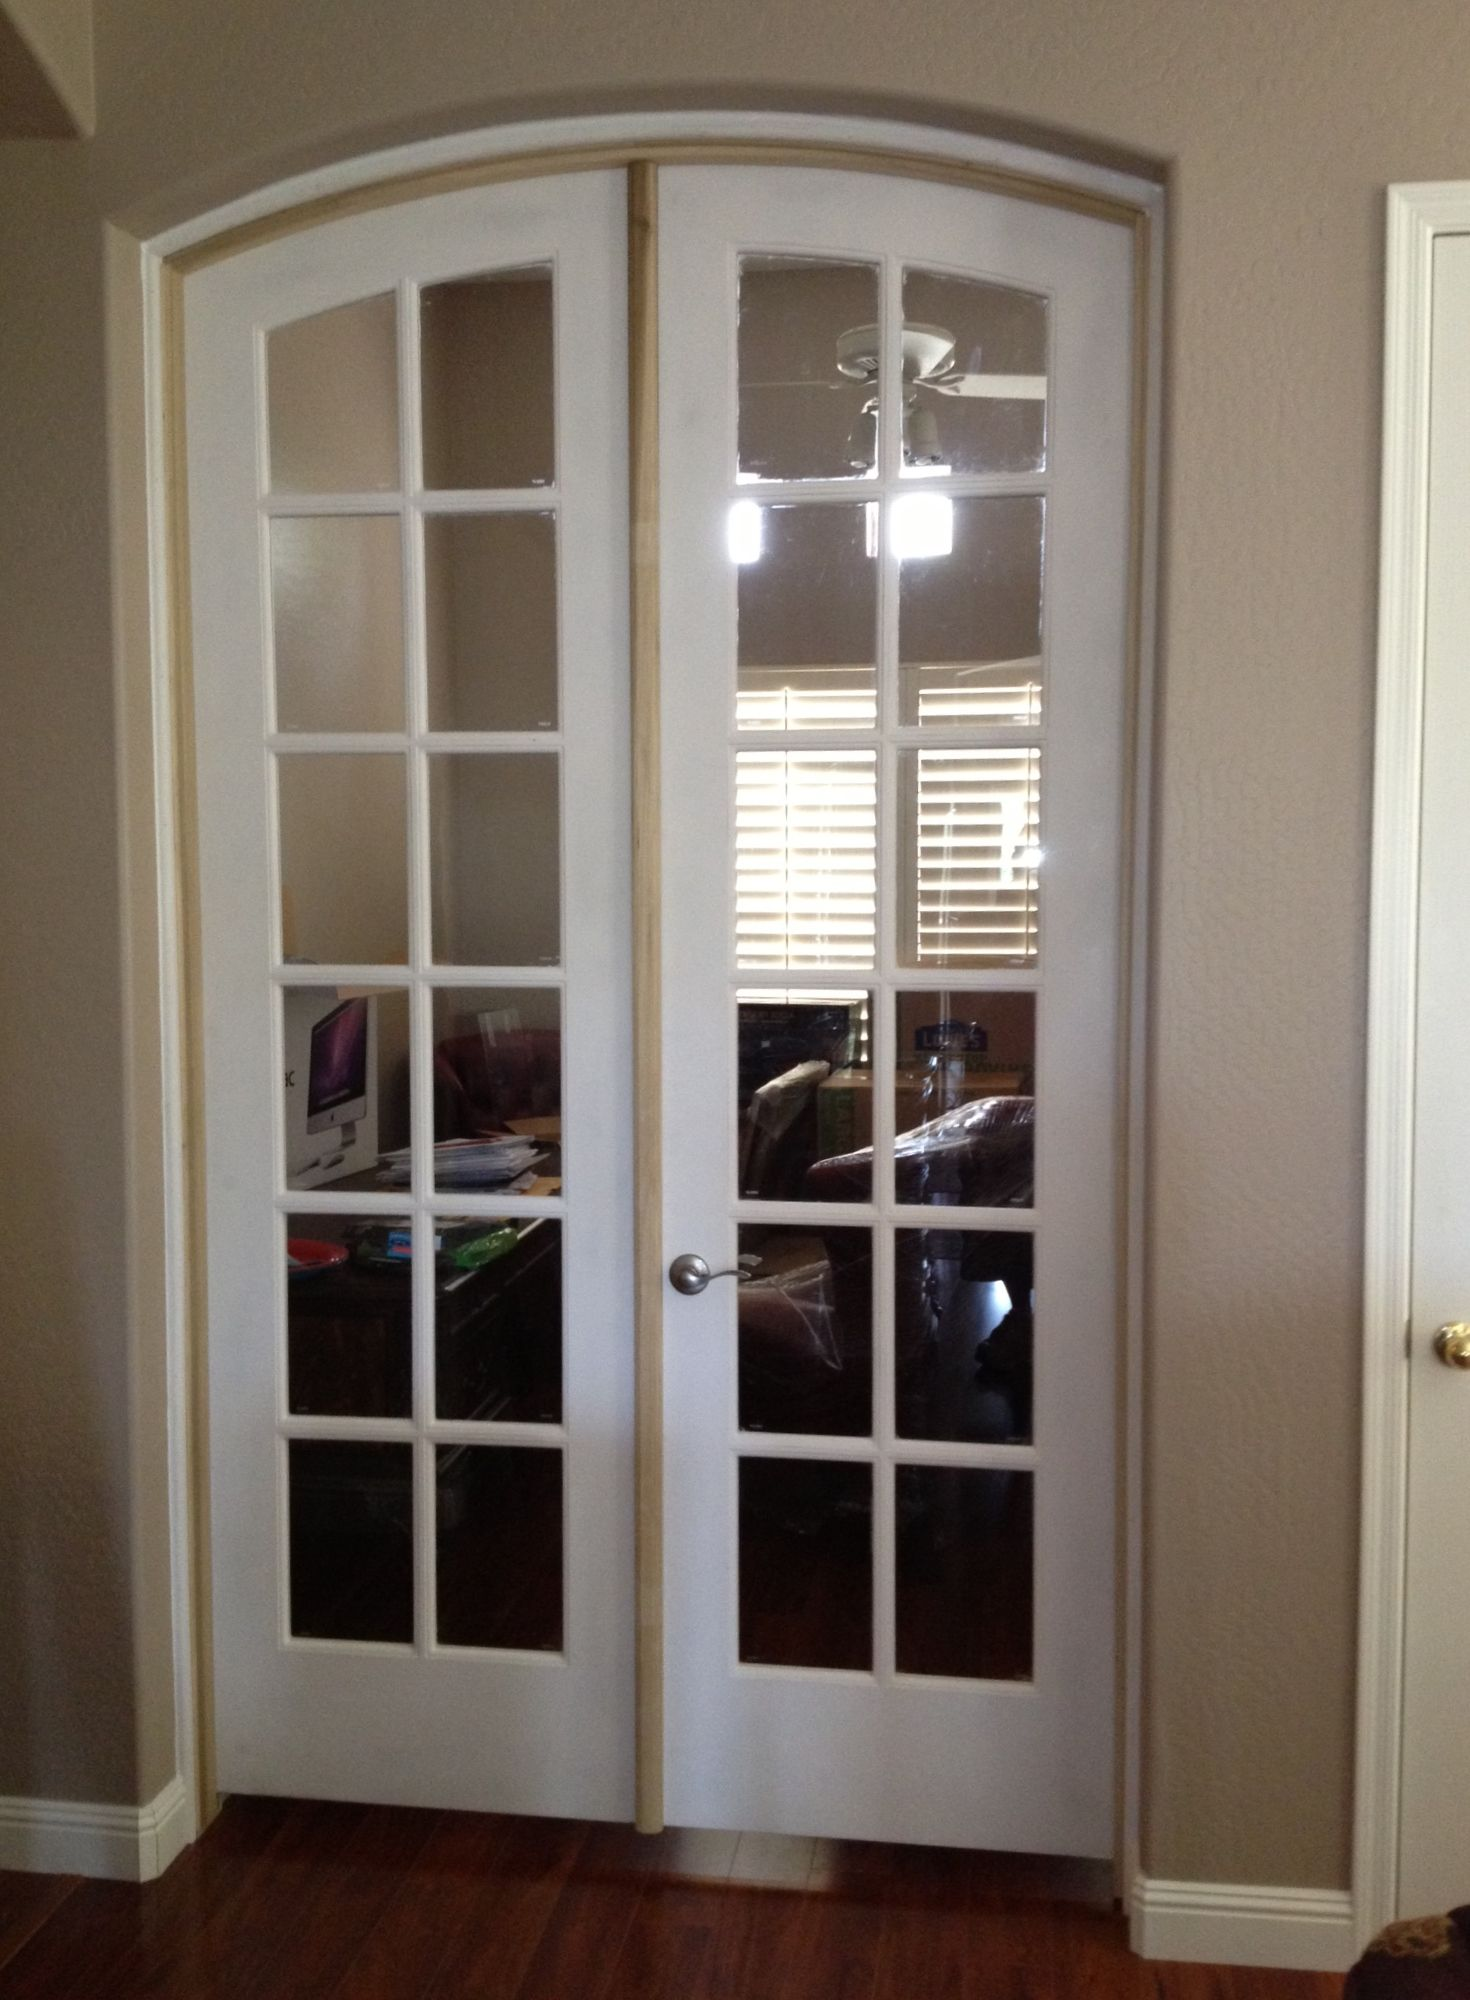 Custom height interior french doors can be designed for for Interior french doors